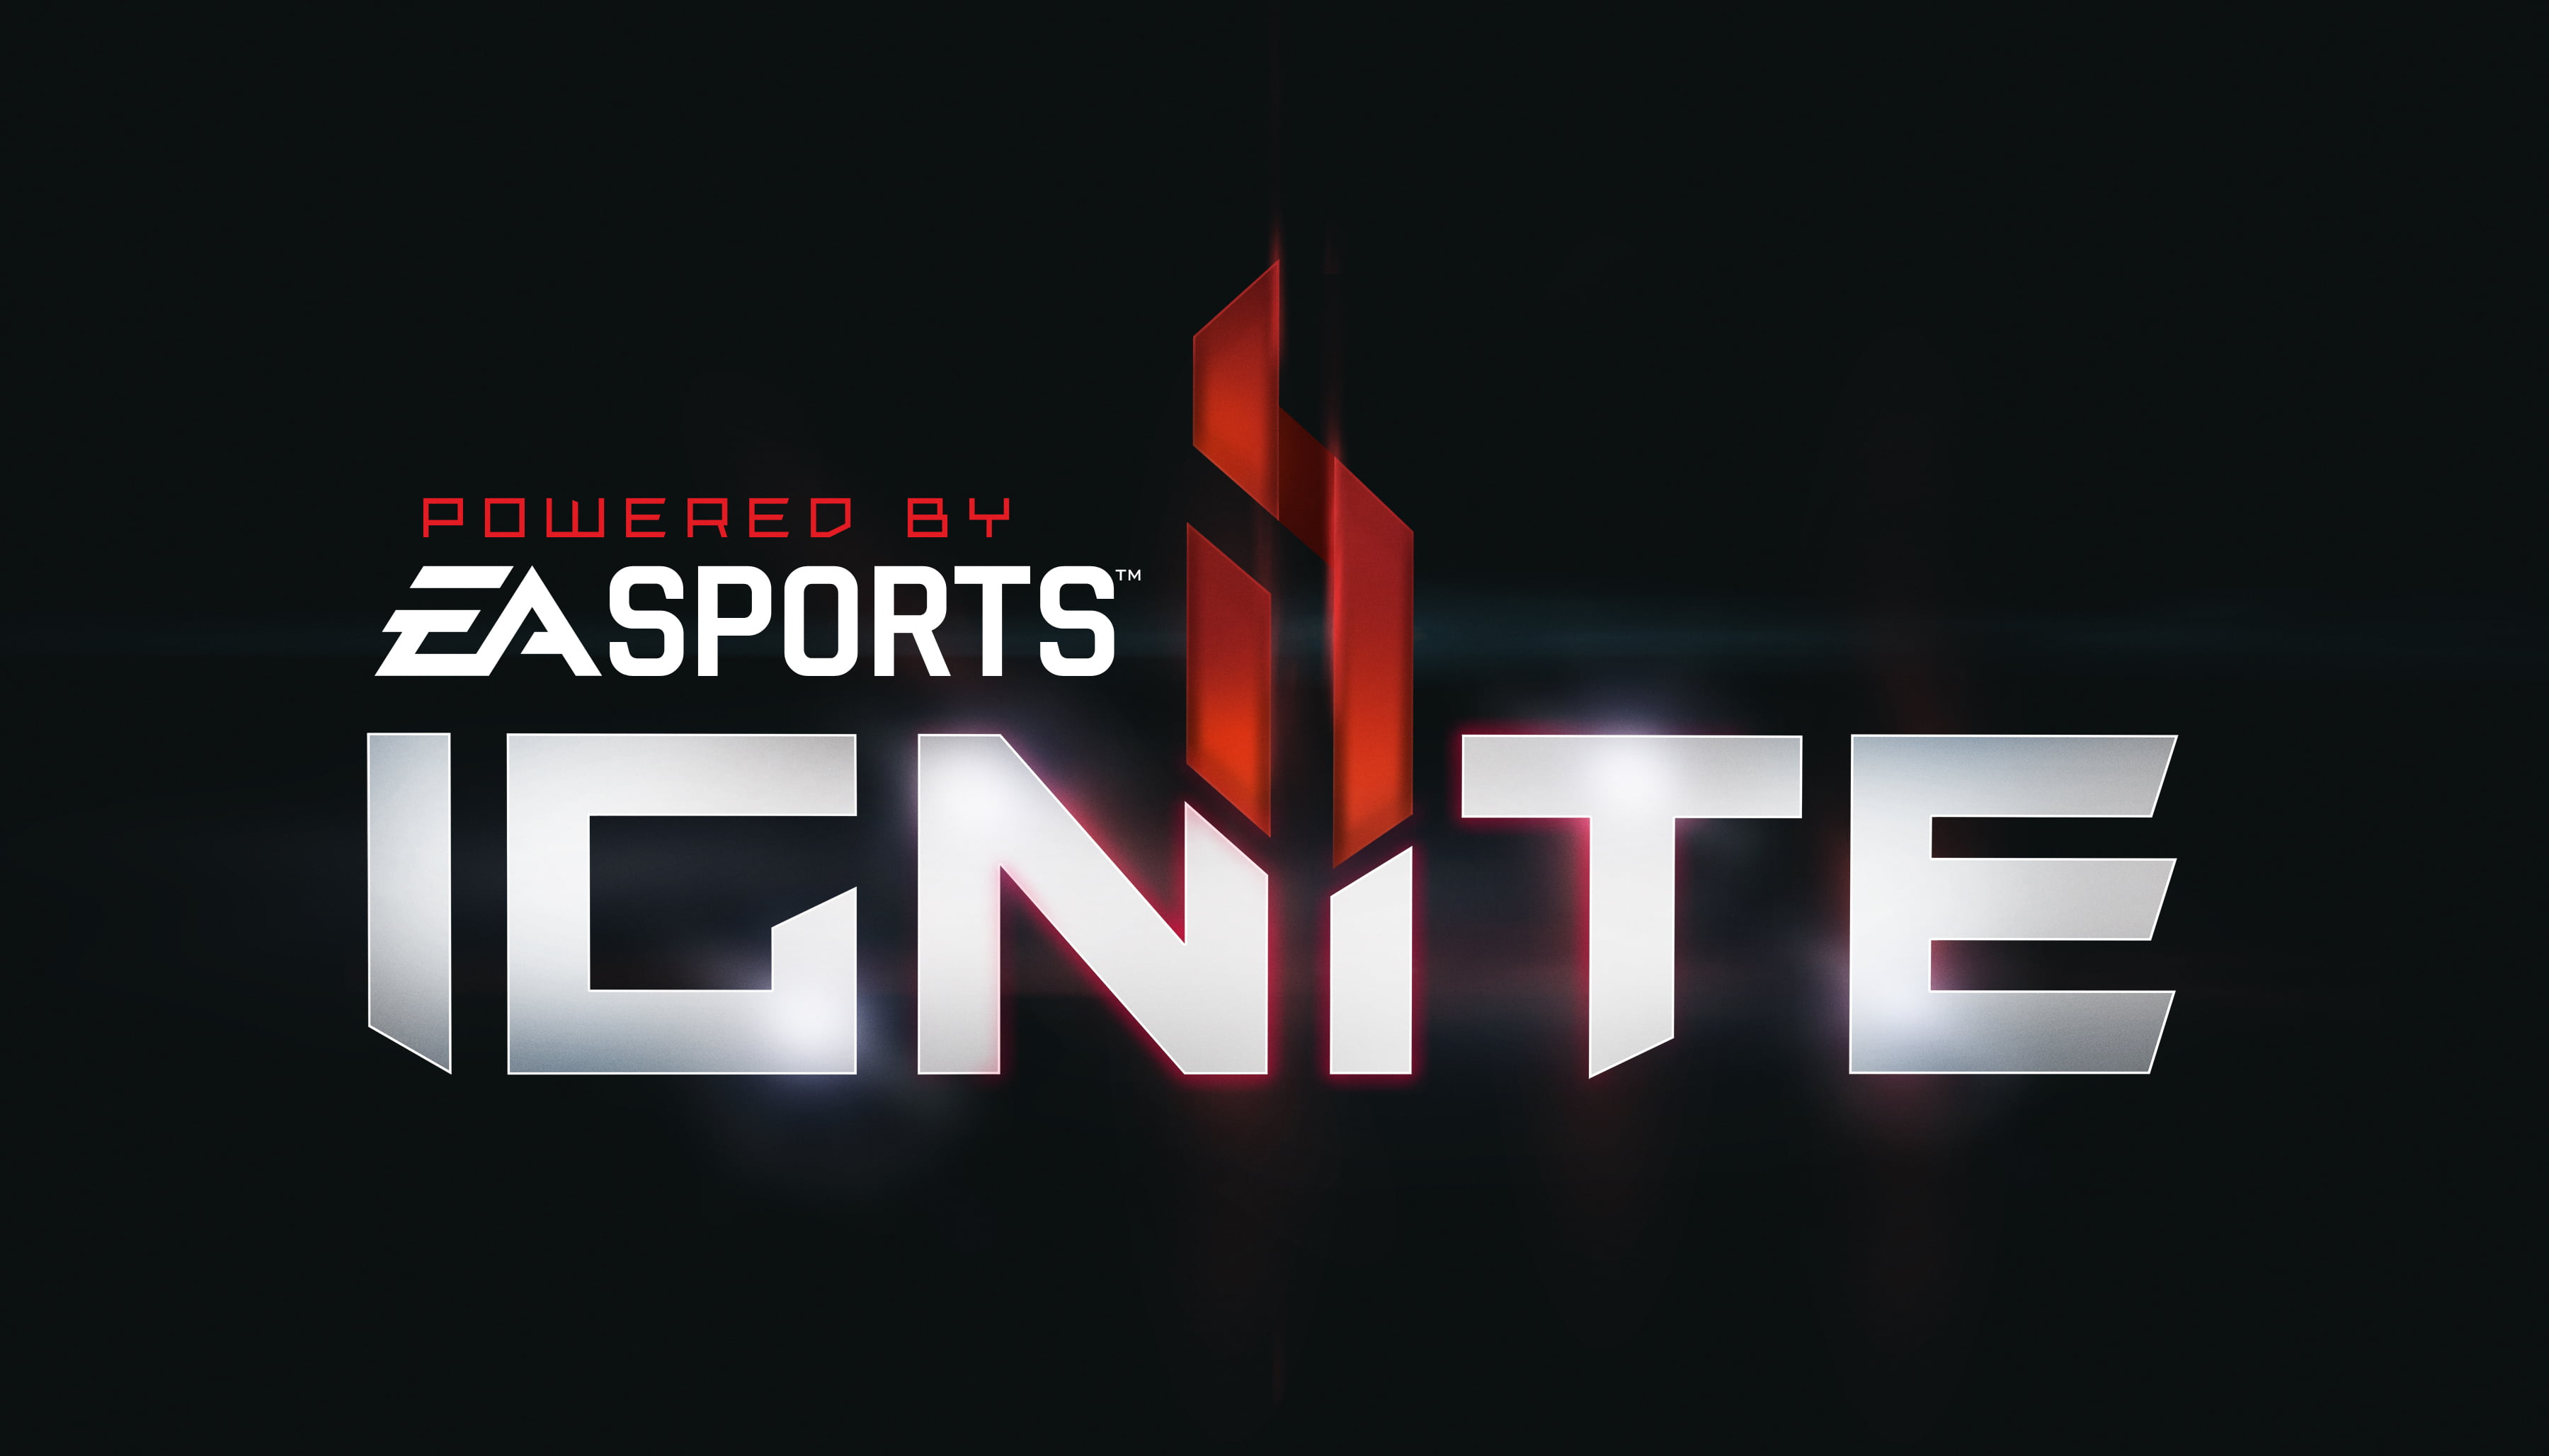 Photo of New EA SPORTS IGNITE Engine to Power EA SPORTS Games on Next Generation Consoles